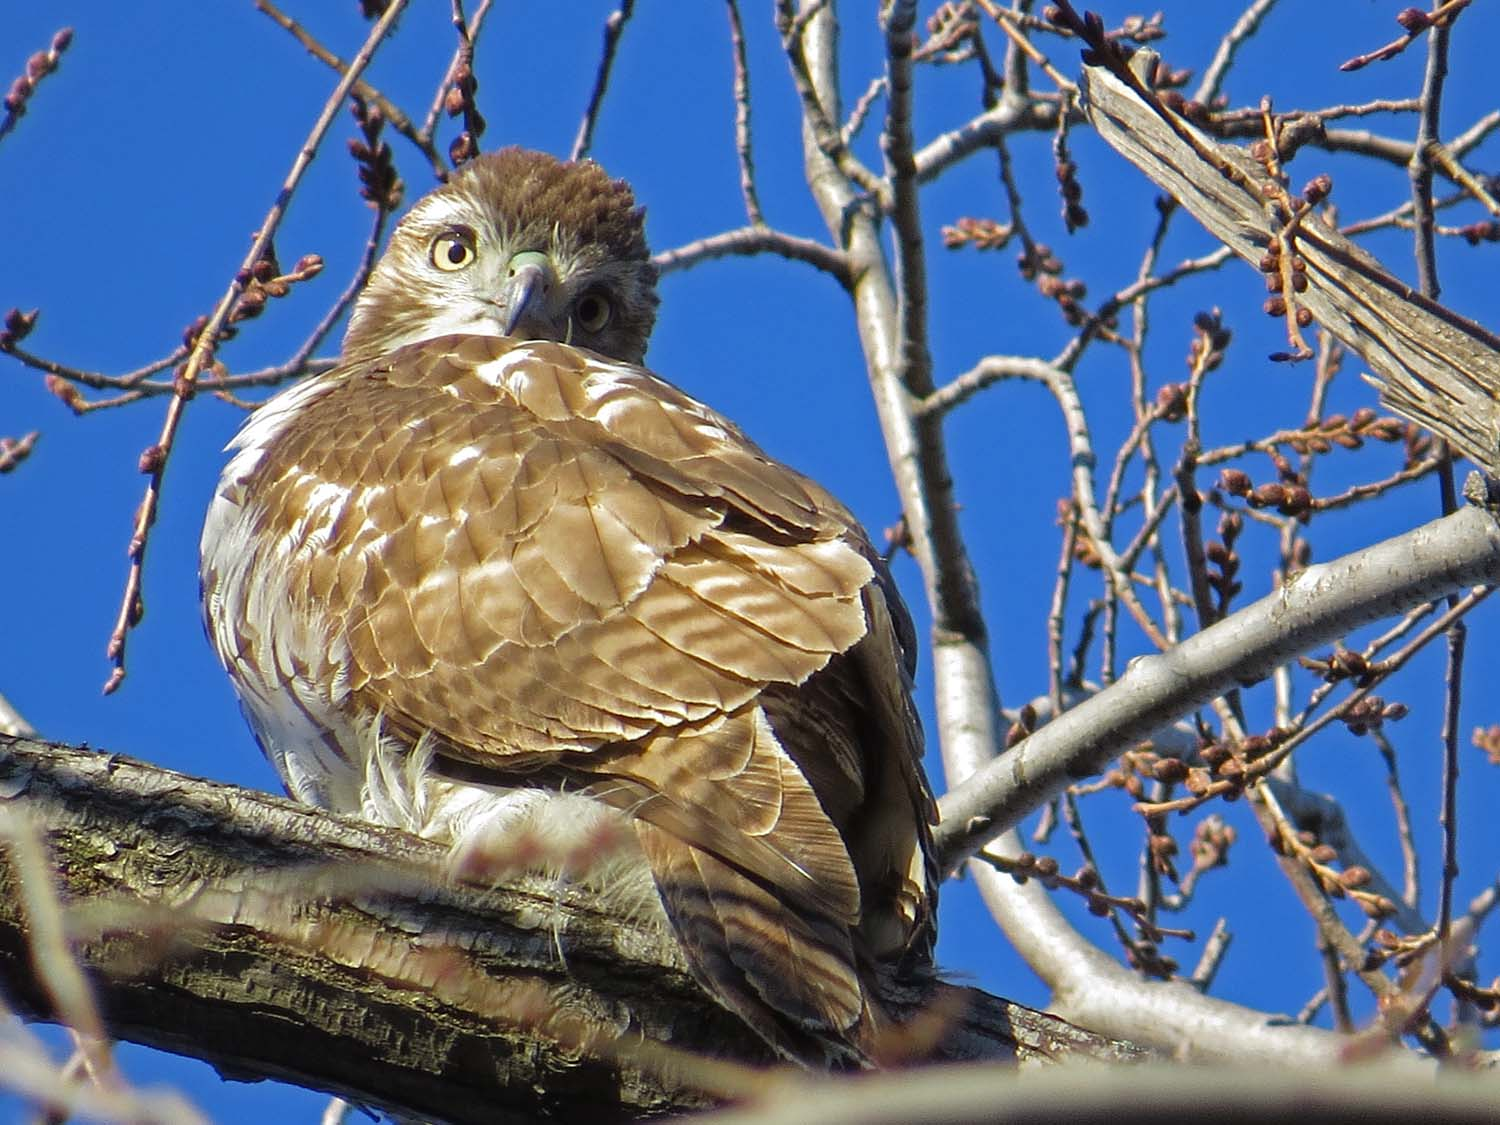 First-year red-tailed hawk, south of Bethesda Fountain, Central Park, Jan. 1, 2017